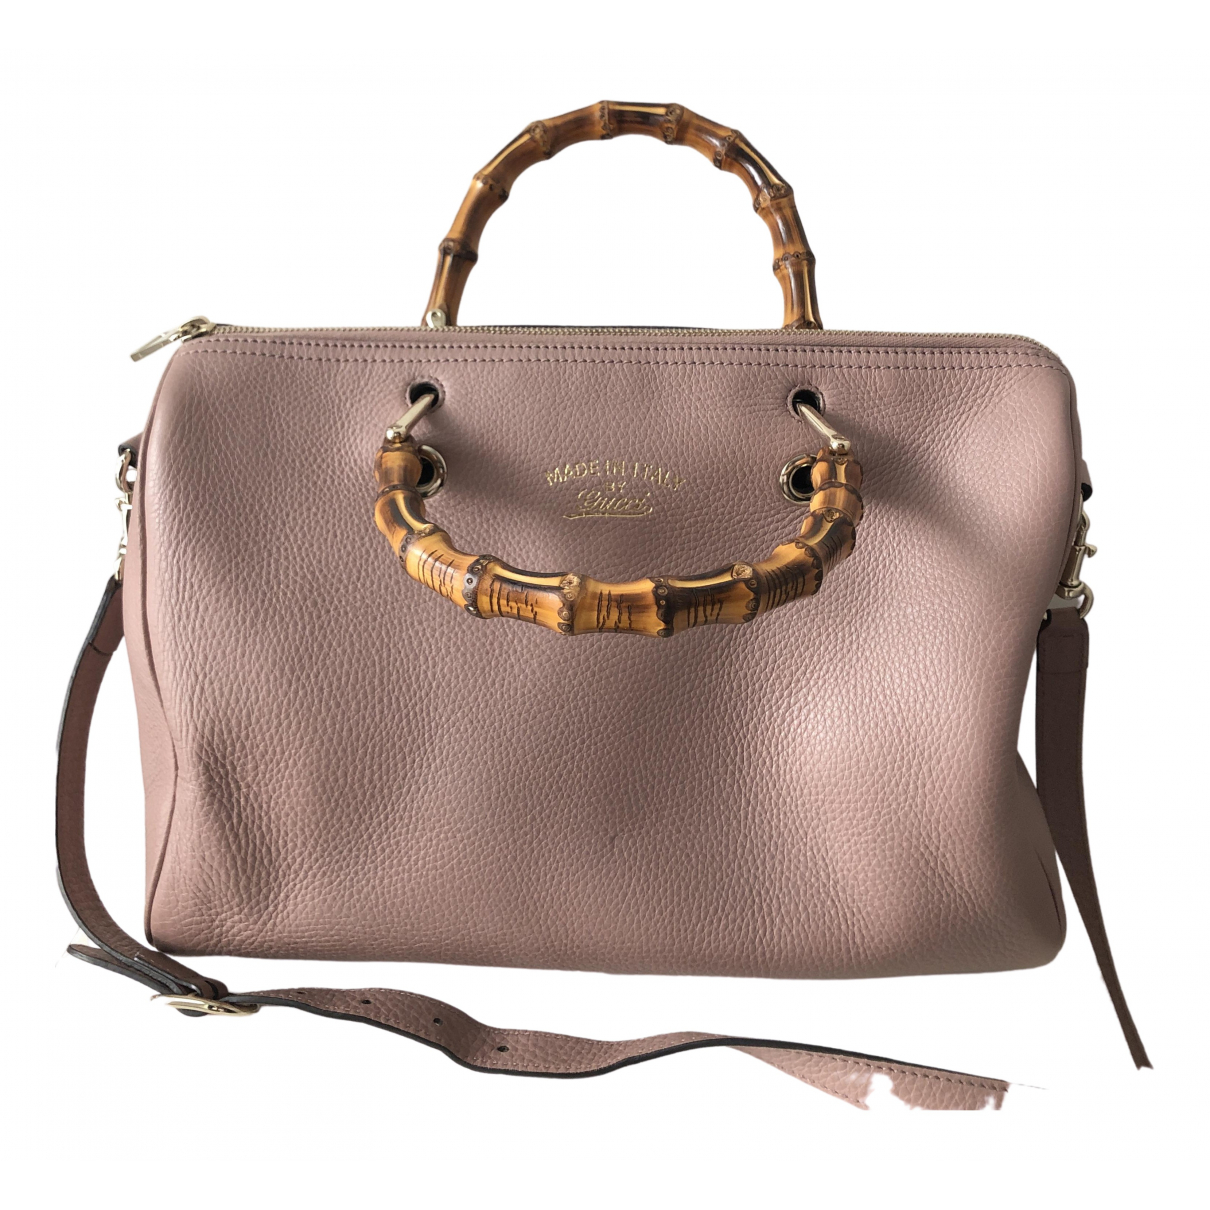 Gucci Bamboo Pink Leather handbag for Women \N